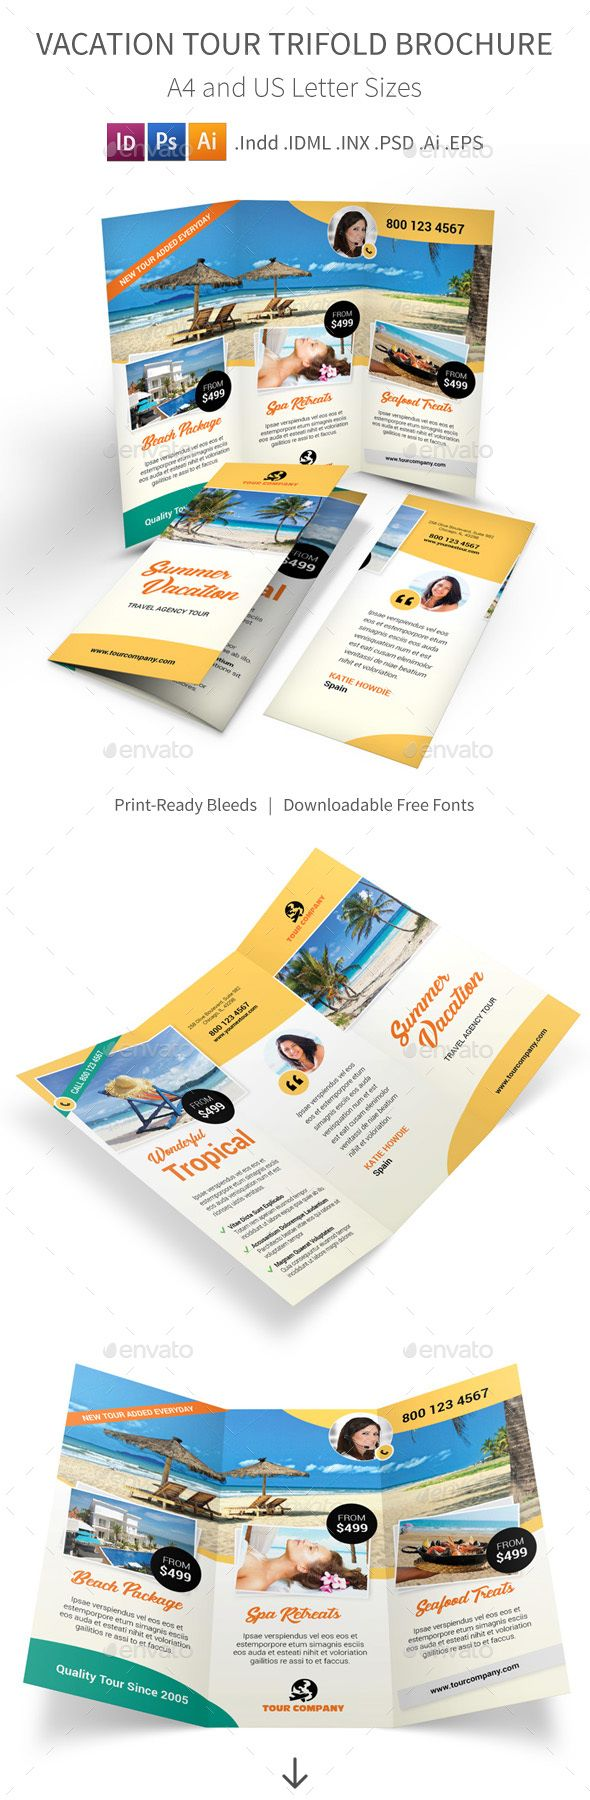 Vacation Tour Trifold Brochure Design Template Informational - Informational brochure template